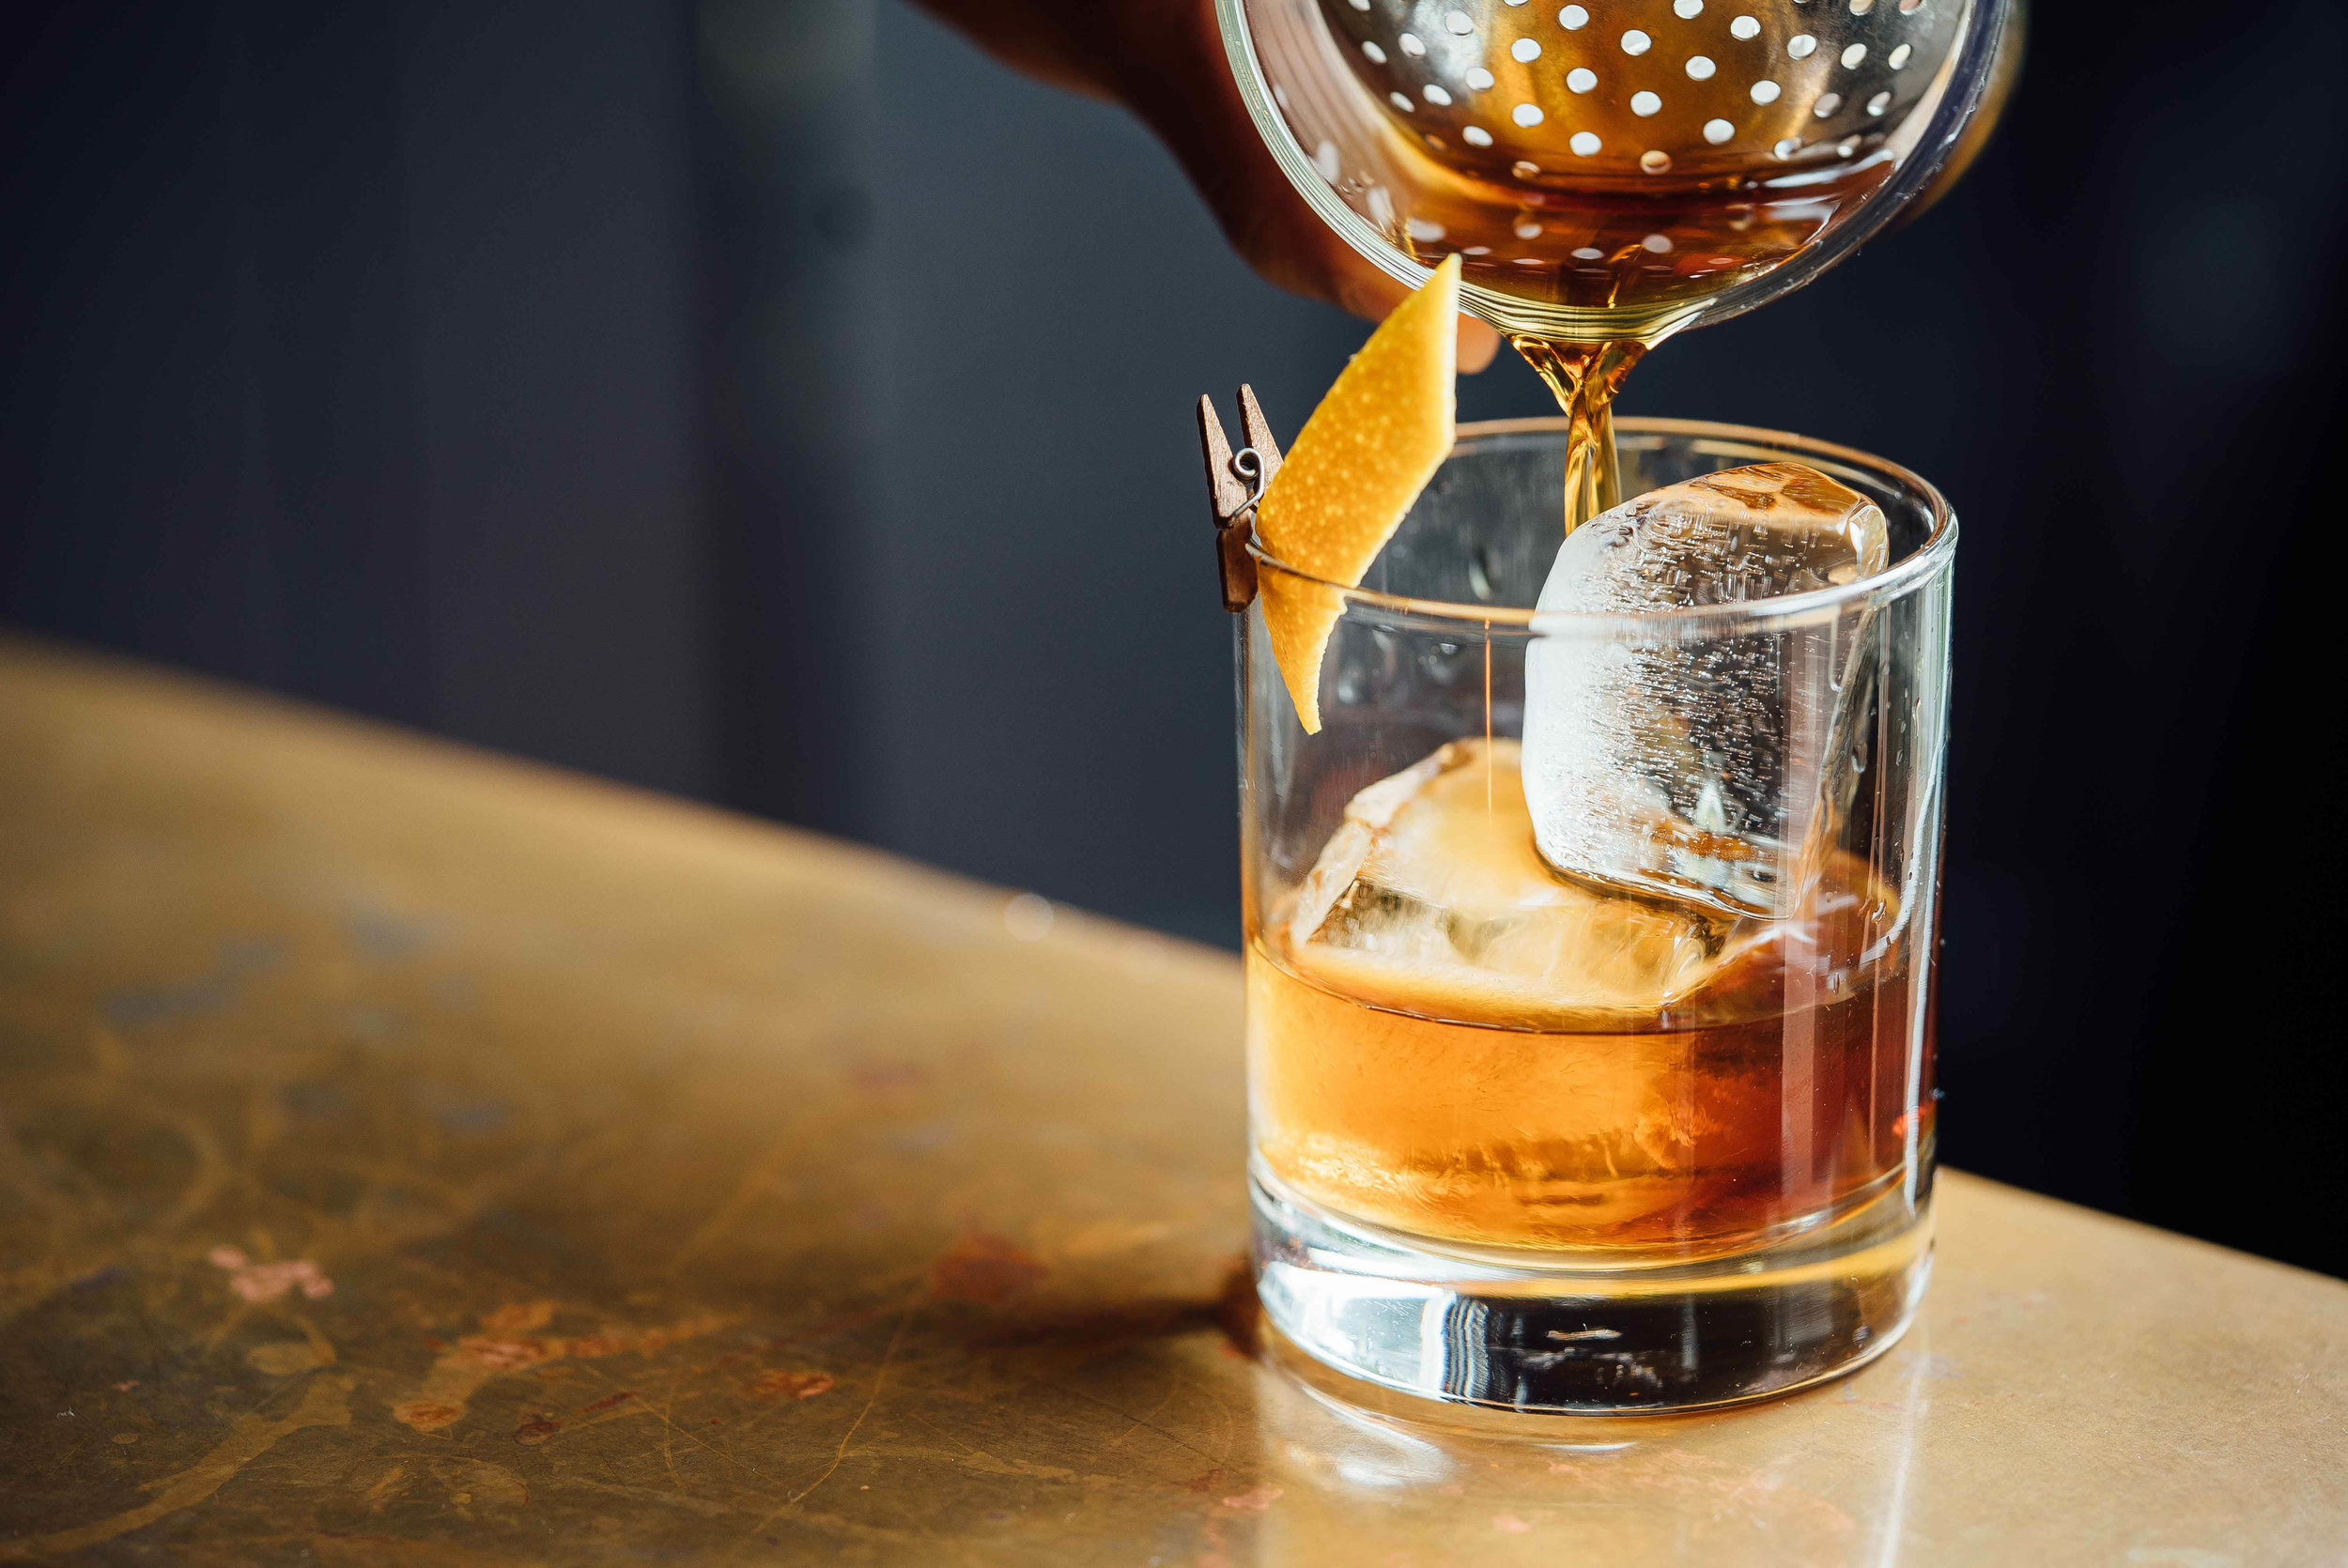 PALMETTO - 1 oz Parce 8 Year Rum1 oz Parce 12 Year Rum1 oz Carpano Antica Sweet Vermouth2 Dashes Angostura Bitters—Add ice and stir for 30 secondsStrain into an glassGarnish with a Lime Coin